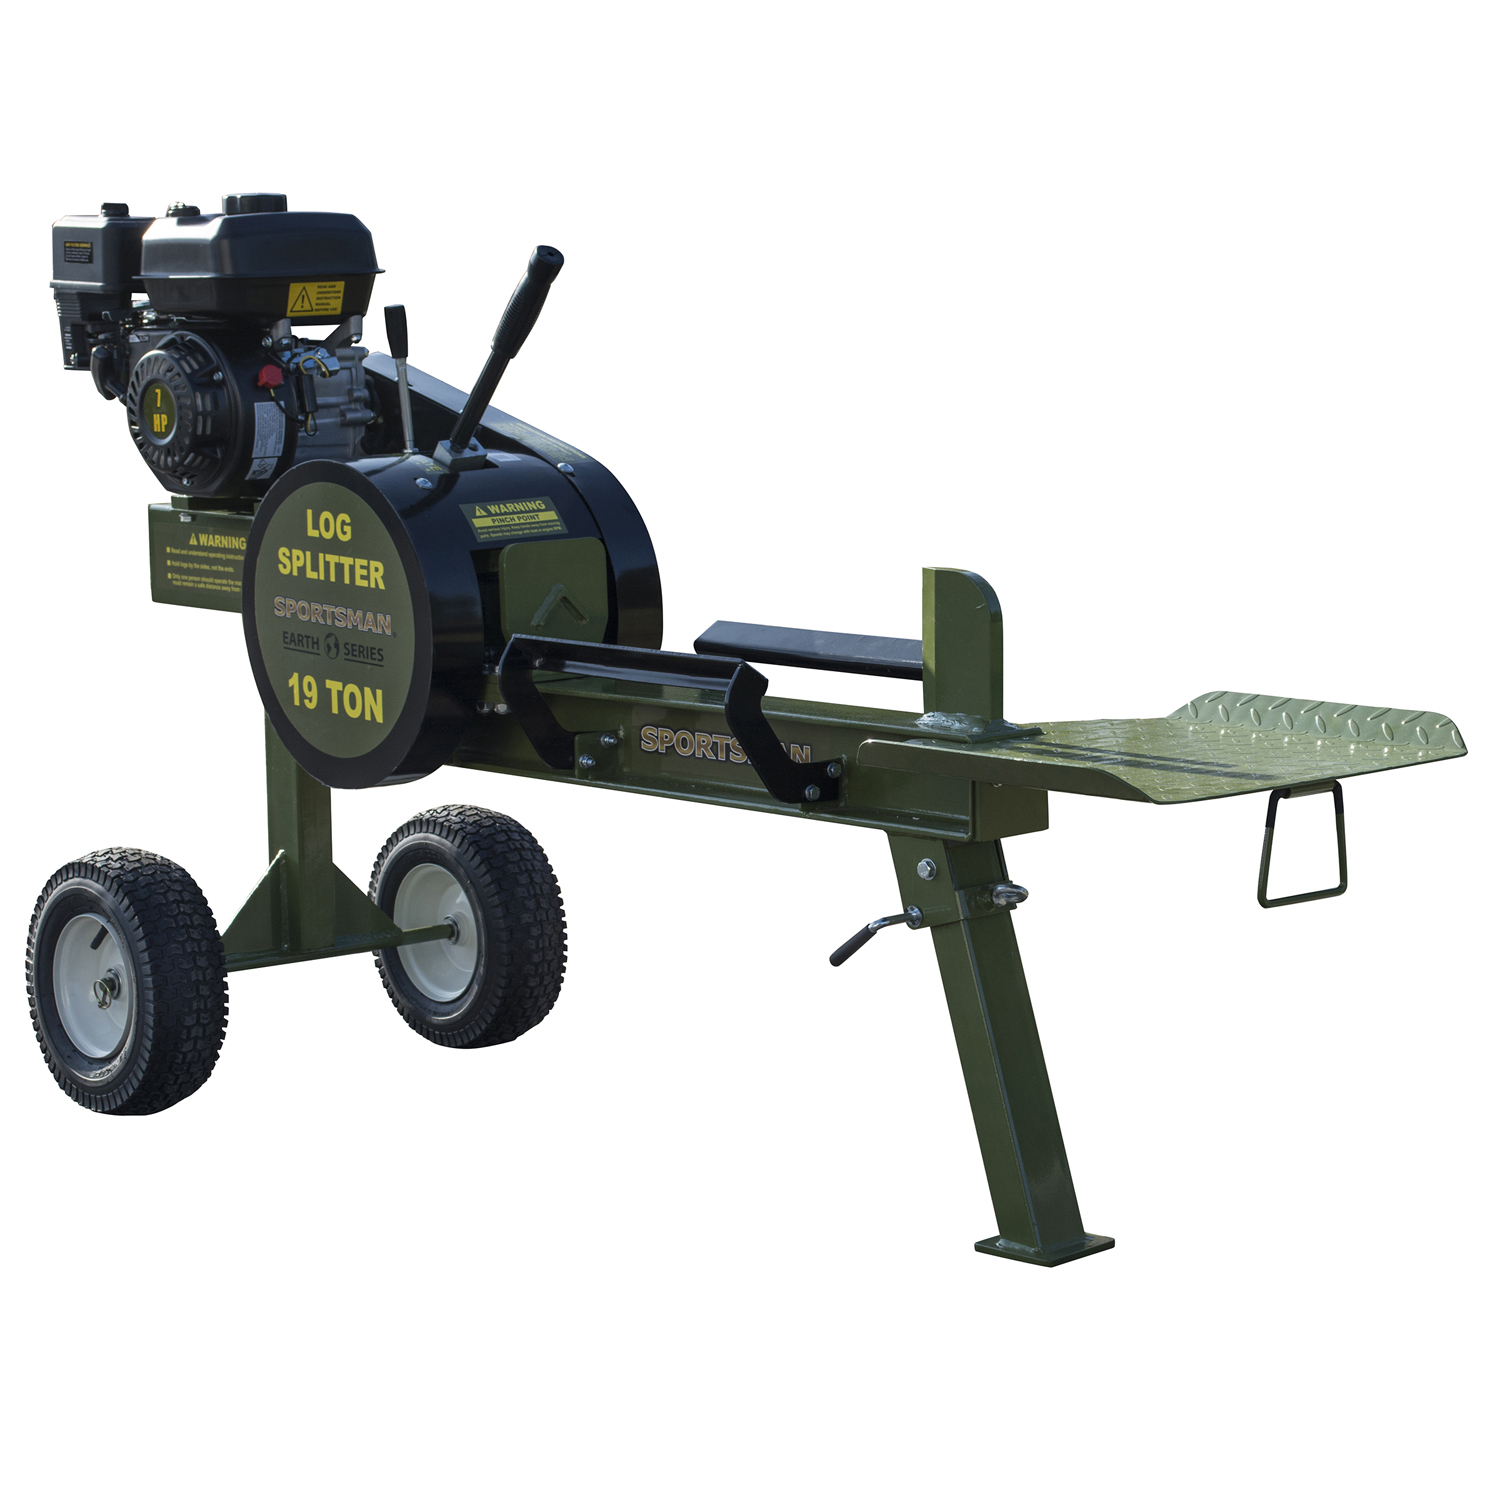 19 Ton Gas Powered Kinetic Log Spitter